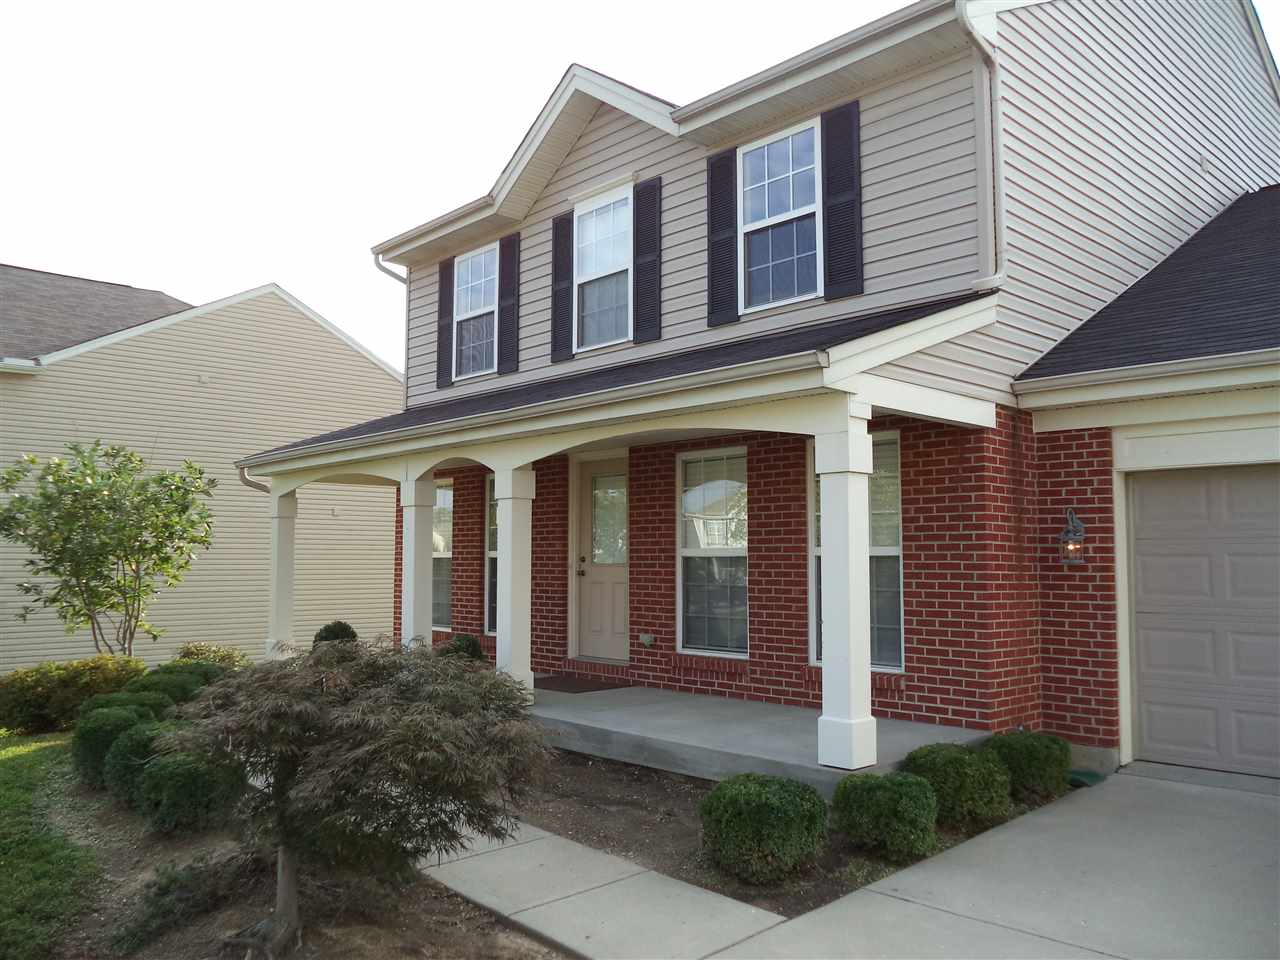 Photo 1 for 2380 Frontier Dr Hebron, KY 41048